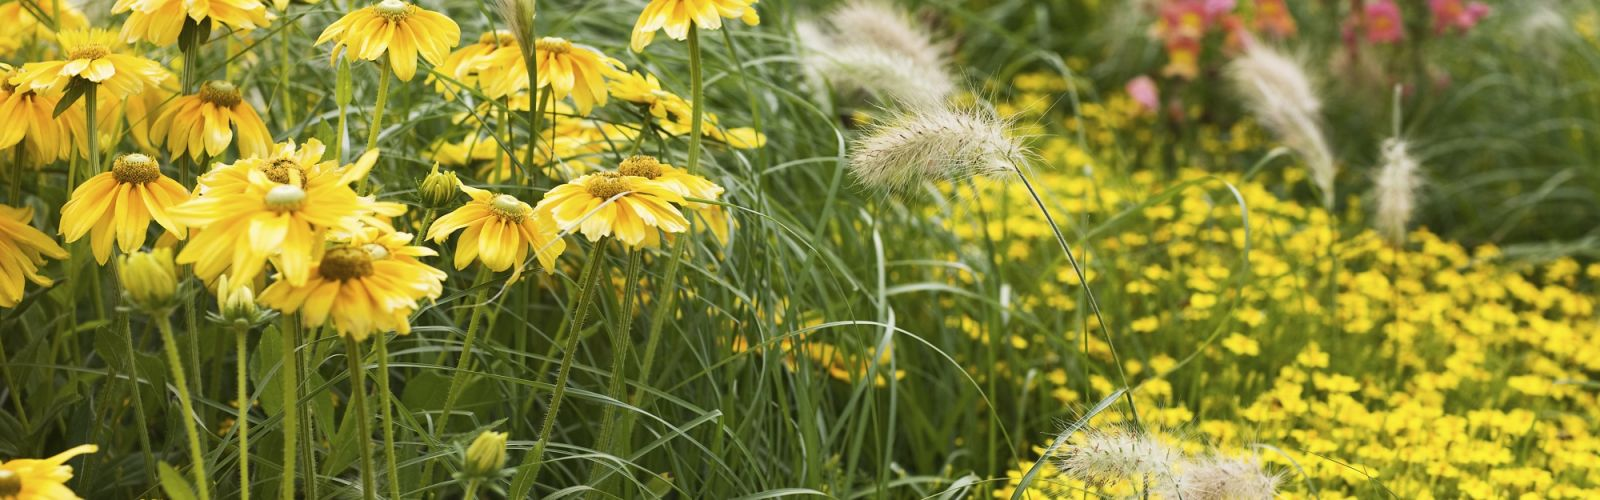 yellow perennial flowers growing in a garden